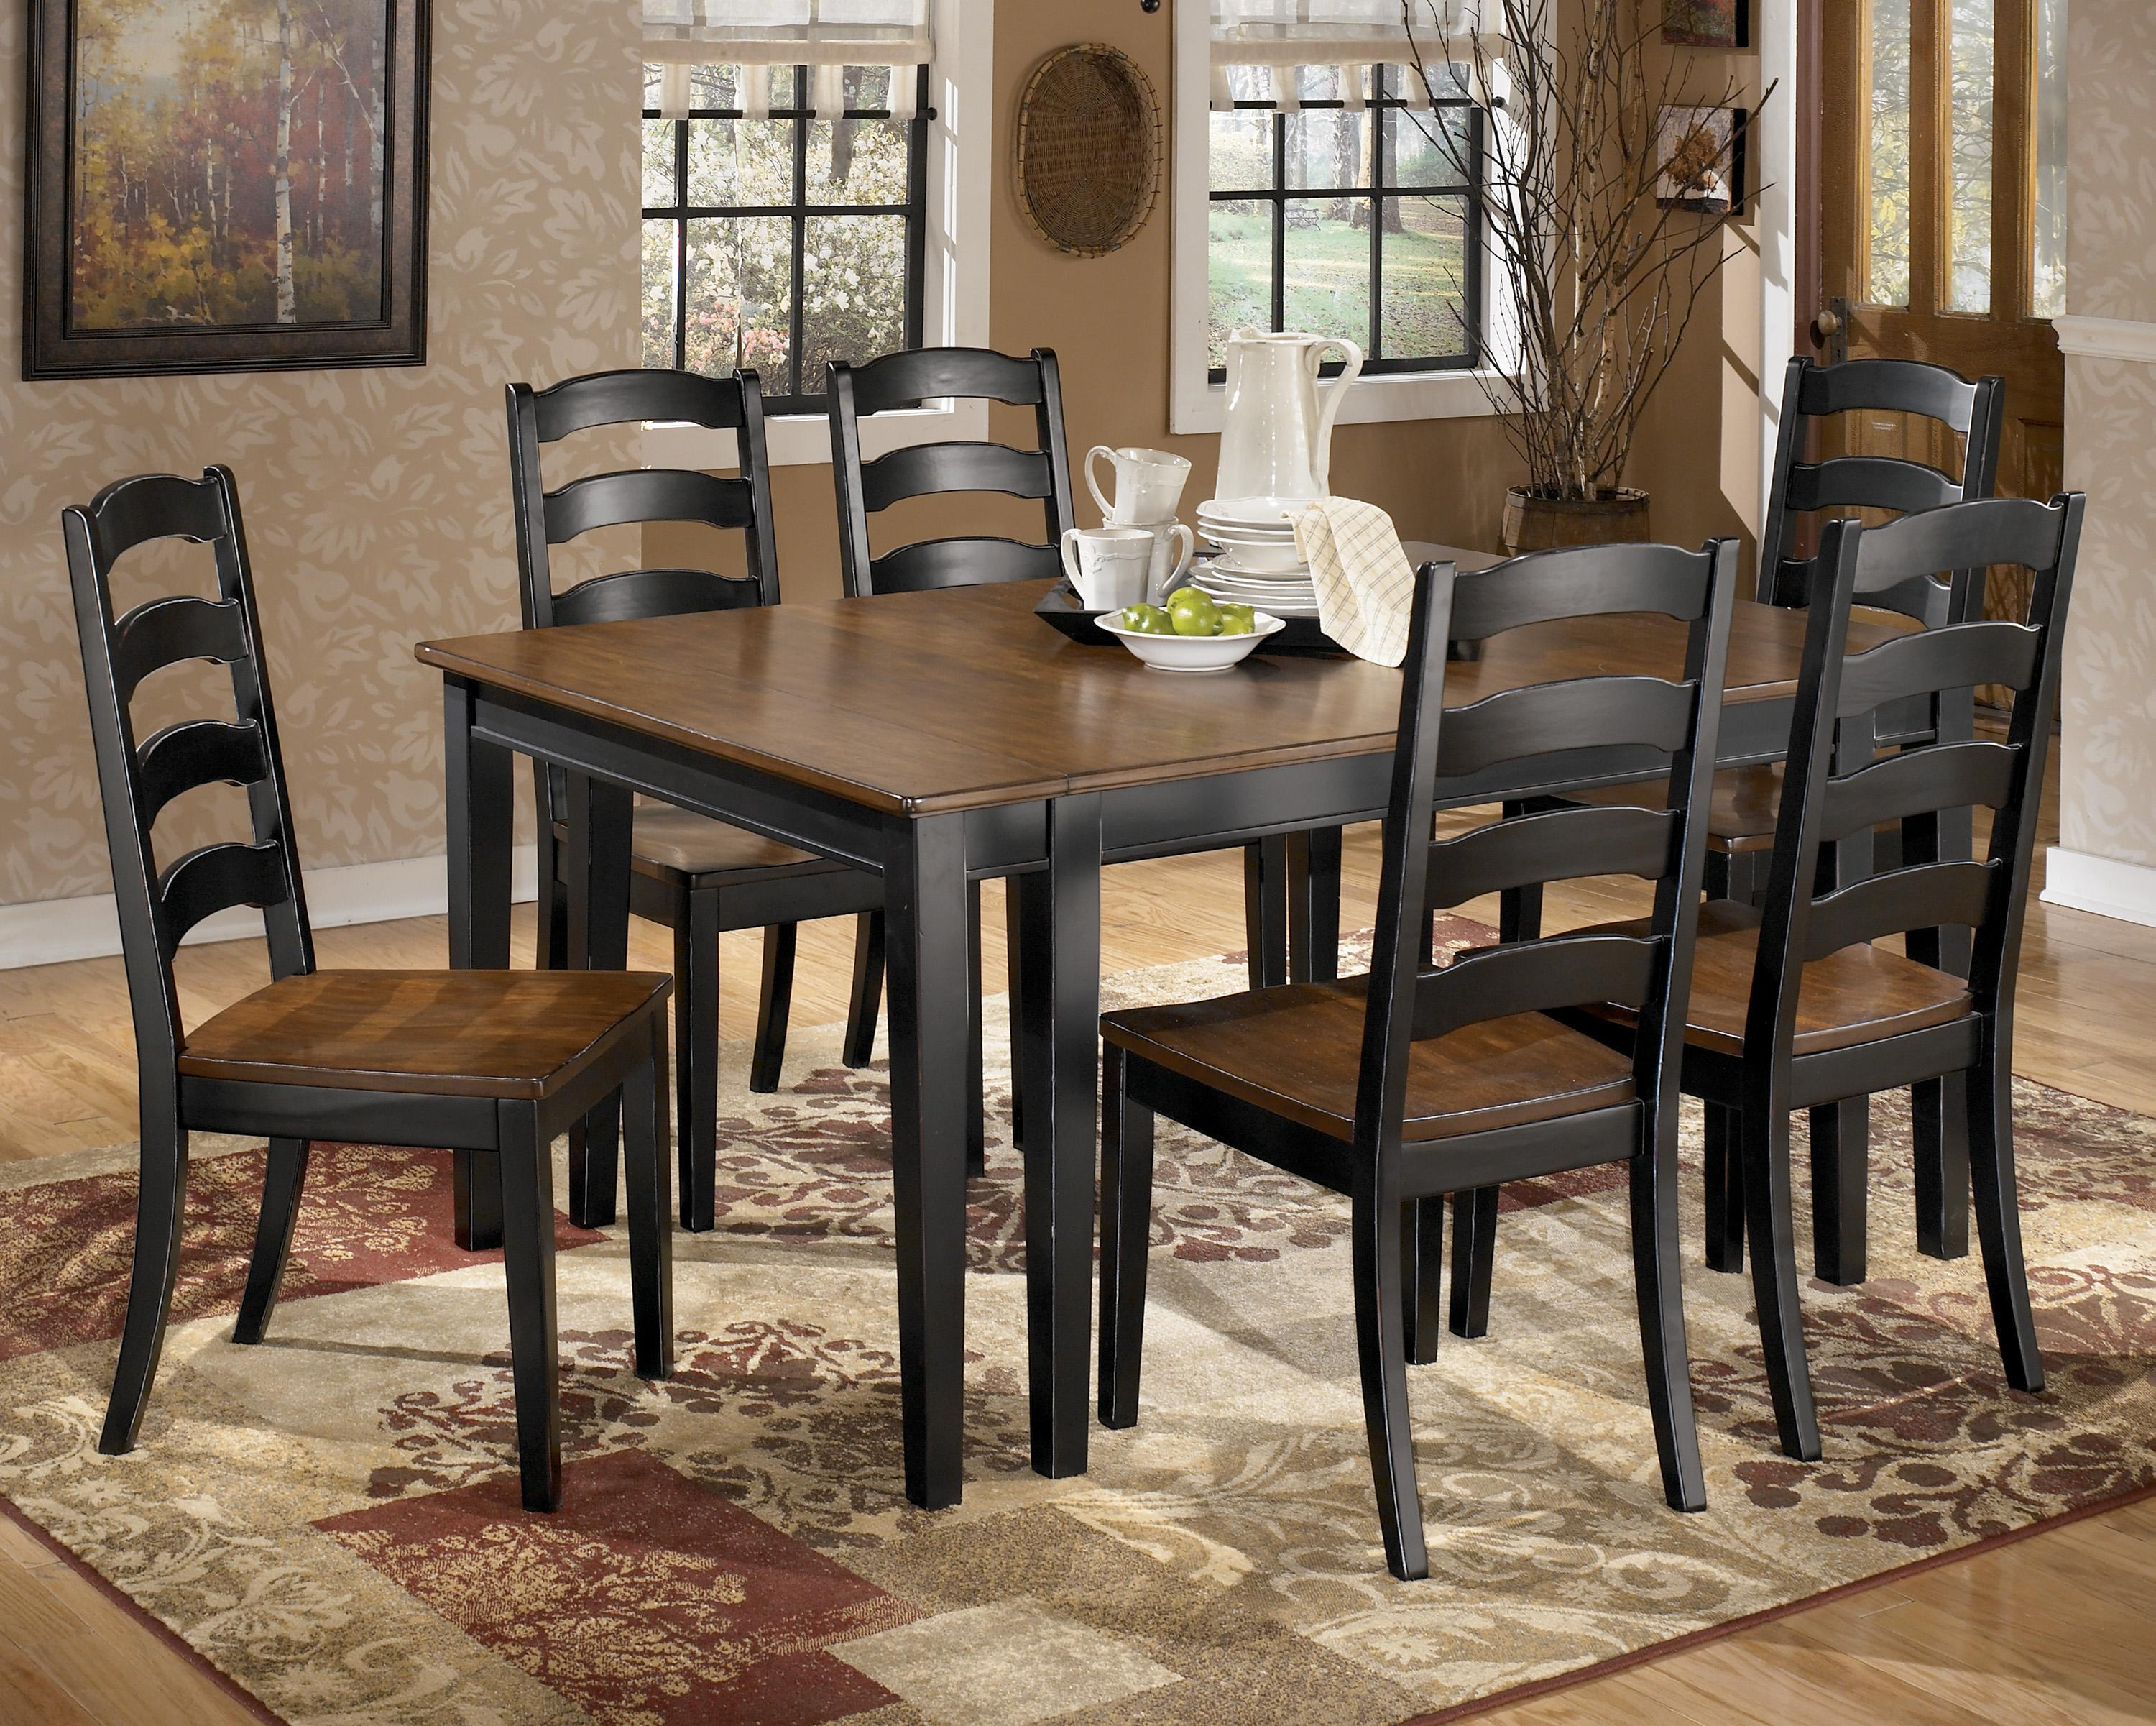 dining room sets target homesfeed. Black Bedroom Furniture Sets. Home Design Ideas